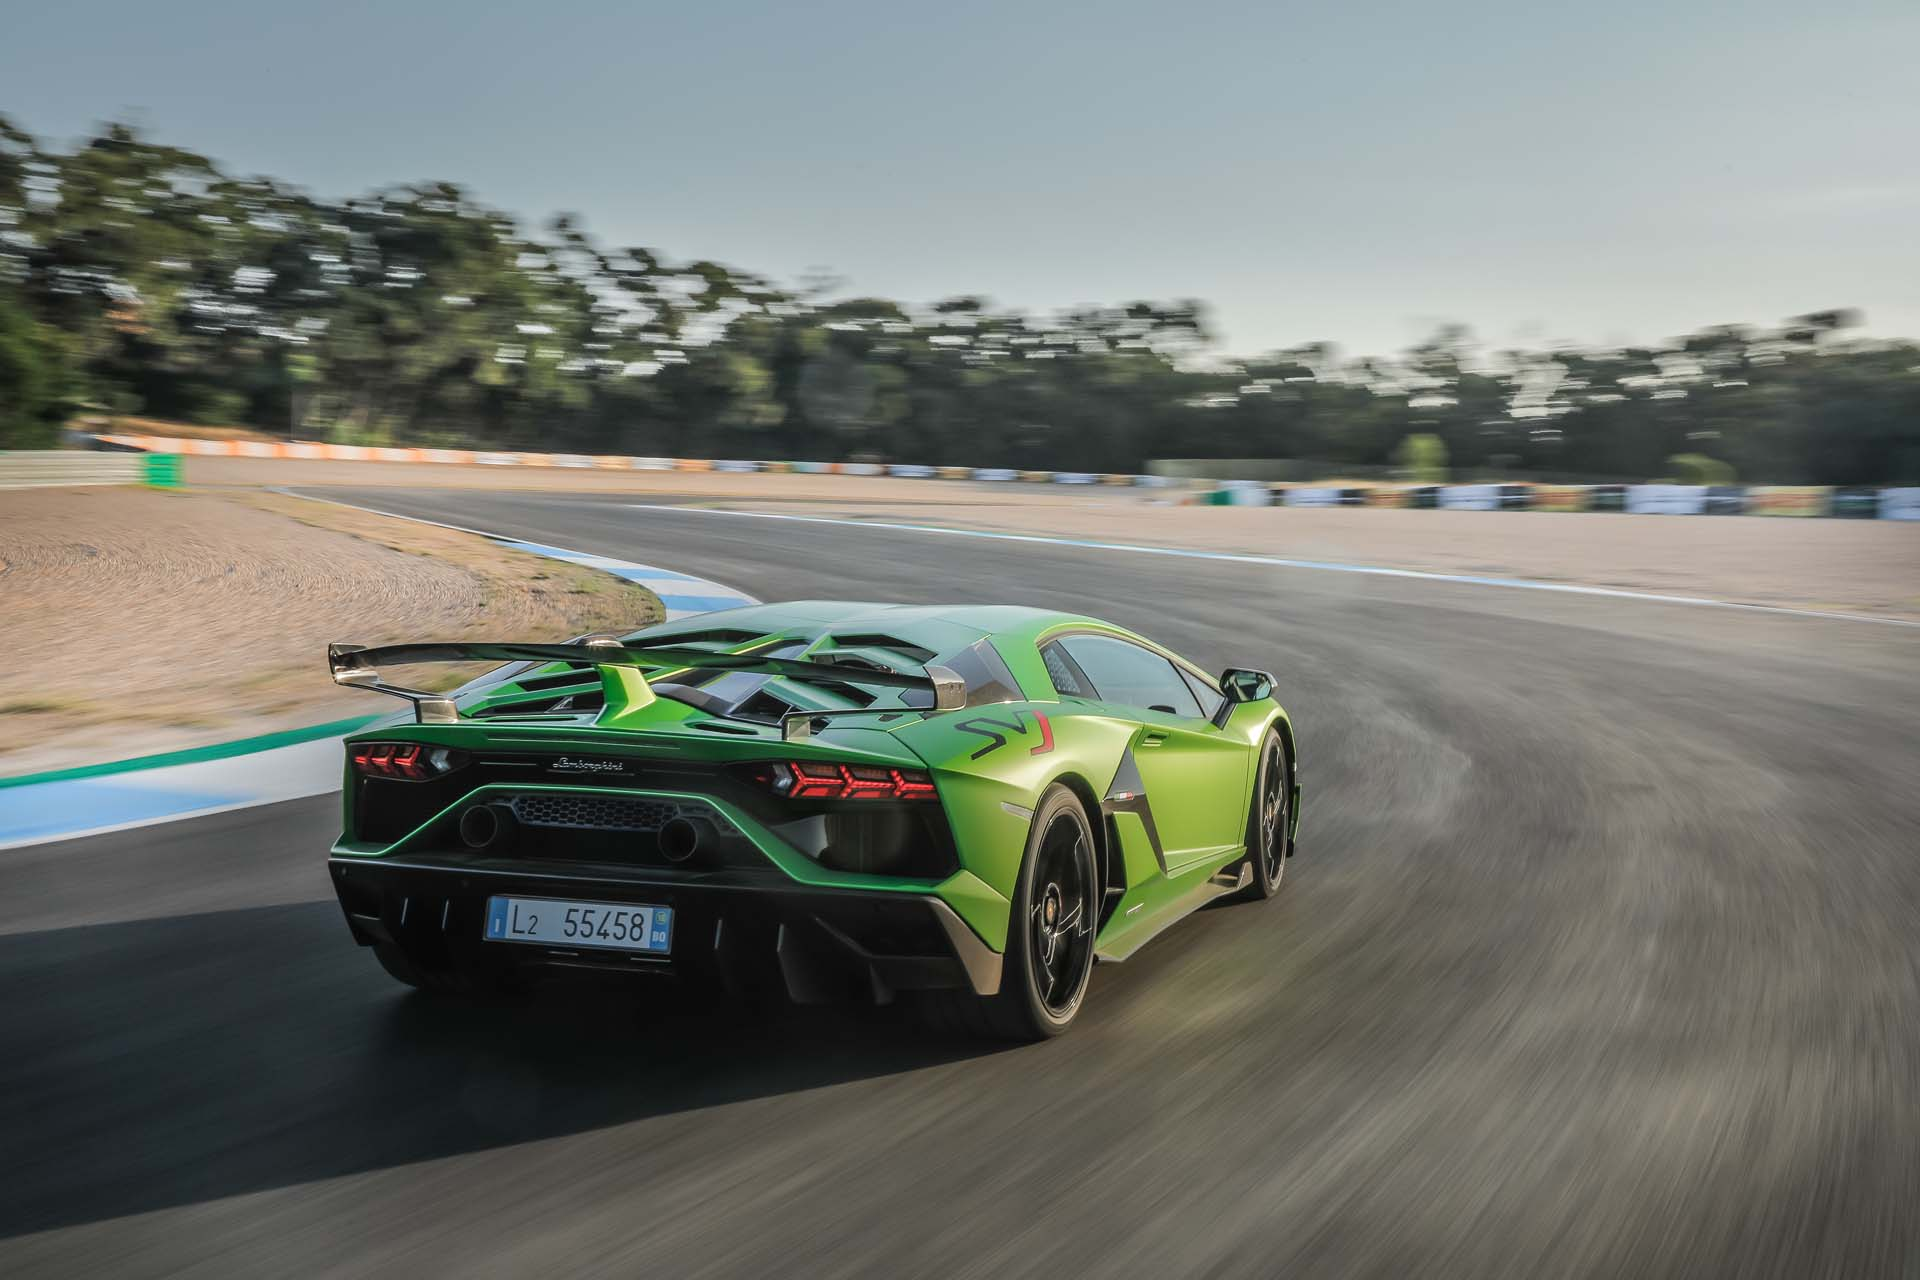 2019 Lamborghini Aventador SVJ Rear Wallpapers #16 of 241